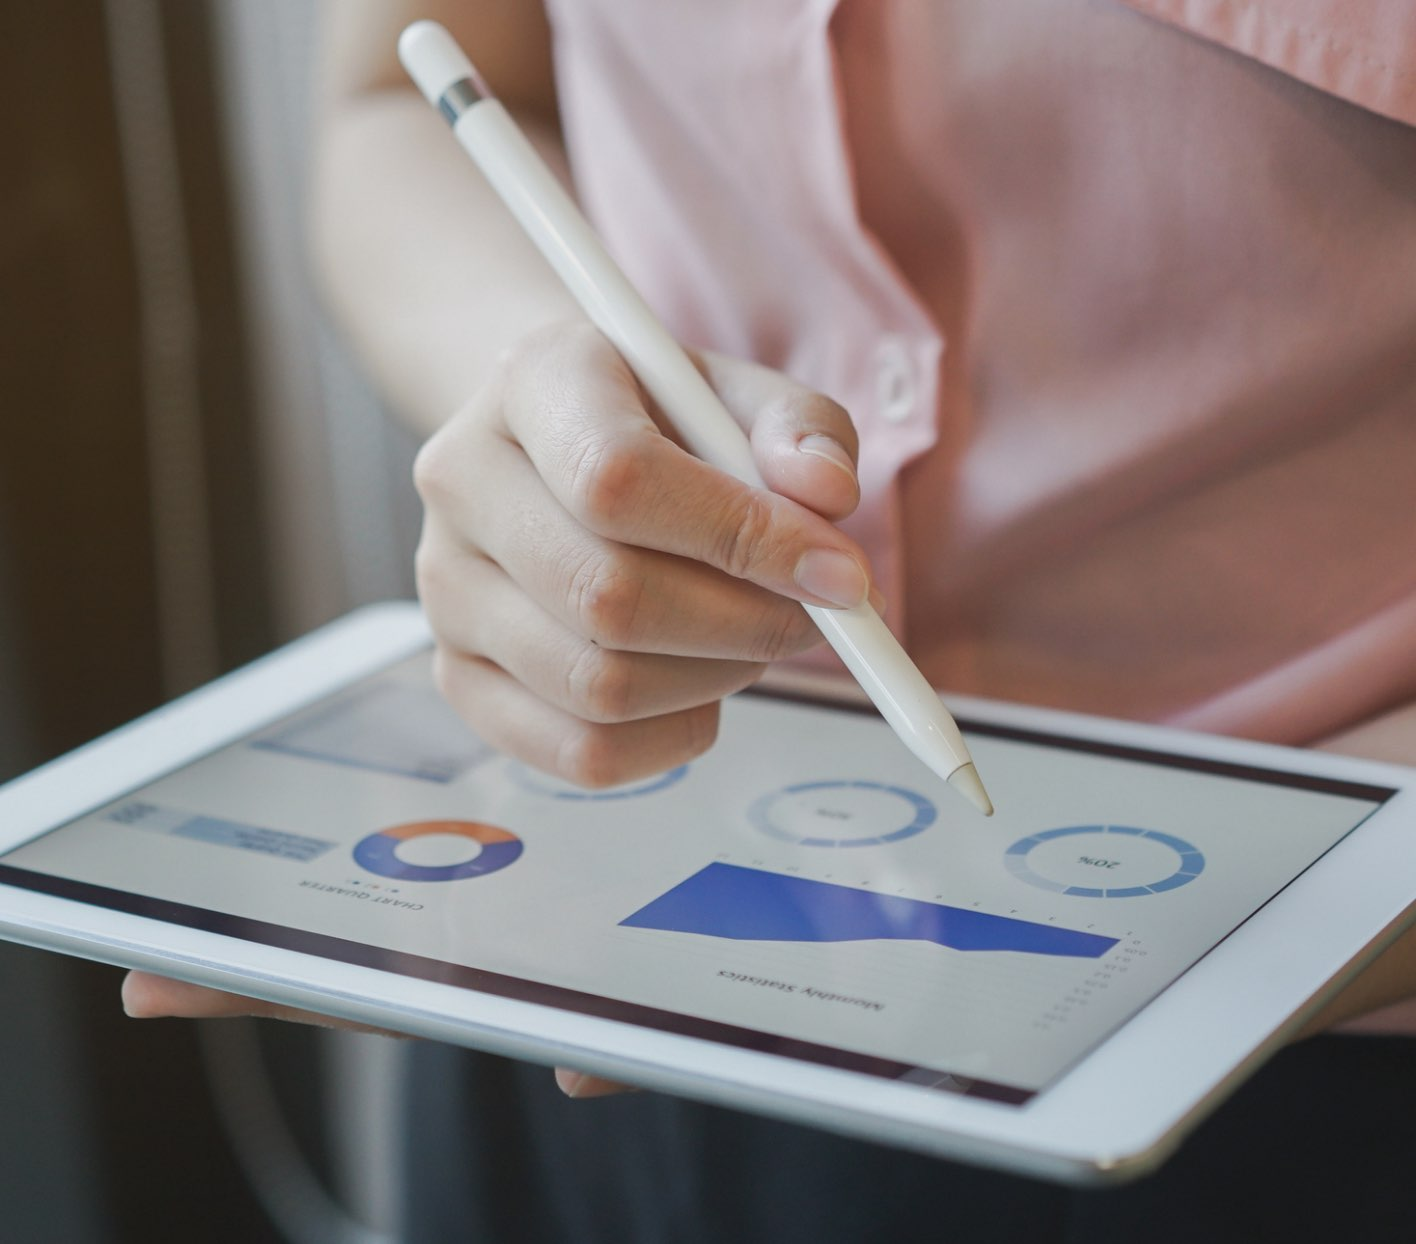 A woman's hand holding a stylus pointing to an ipad with charts and graphs